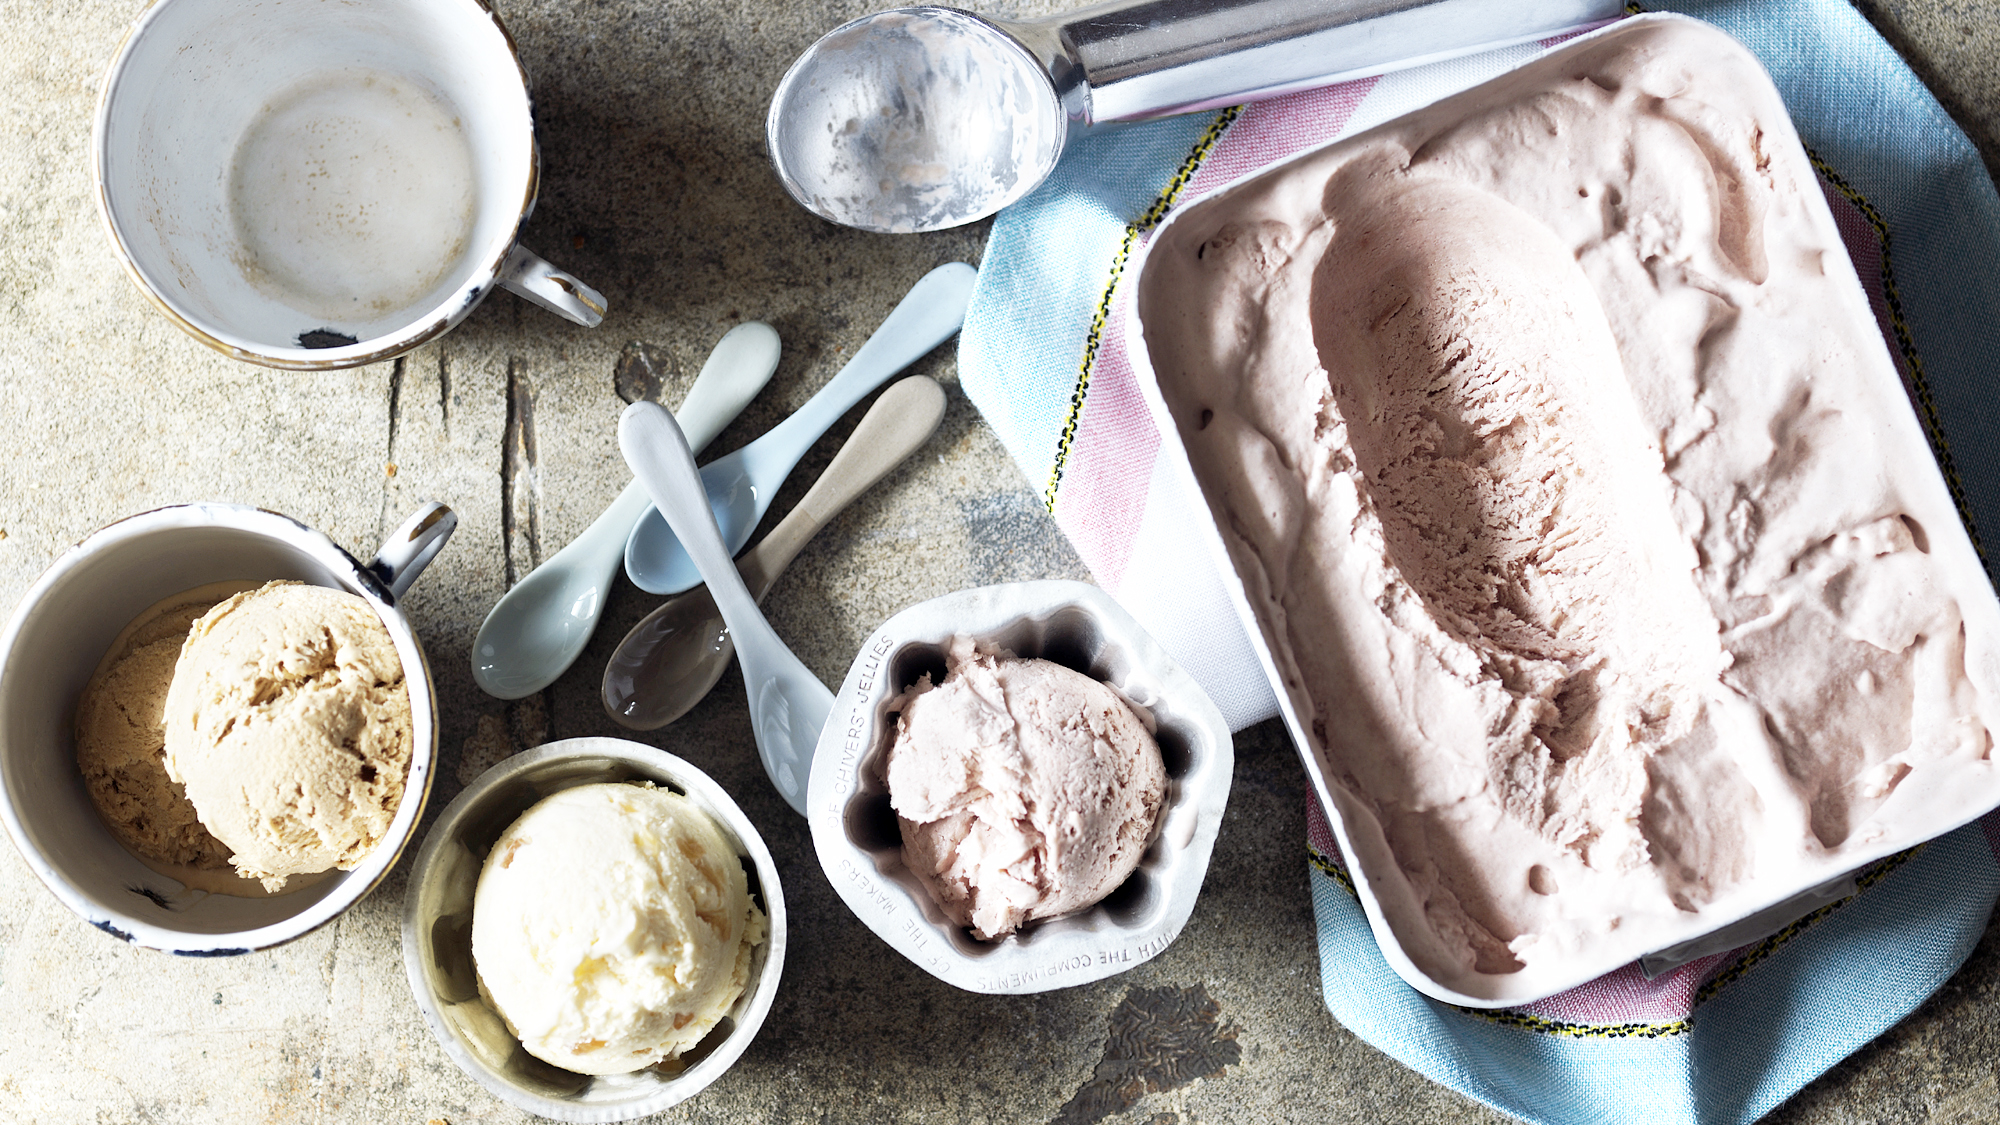 Easy no-churn ice cream recipe - BBC Food